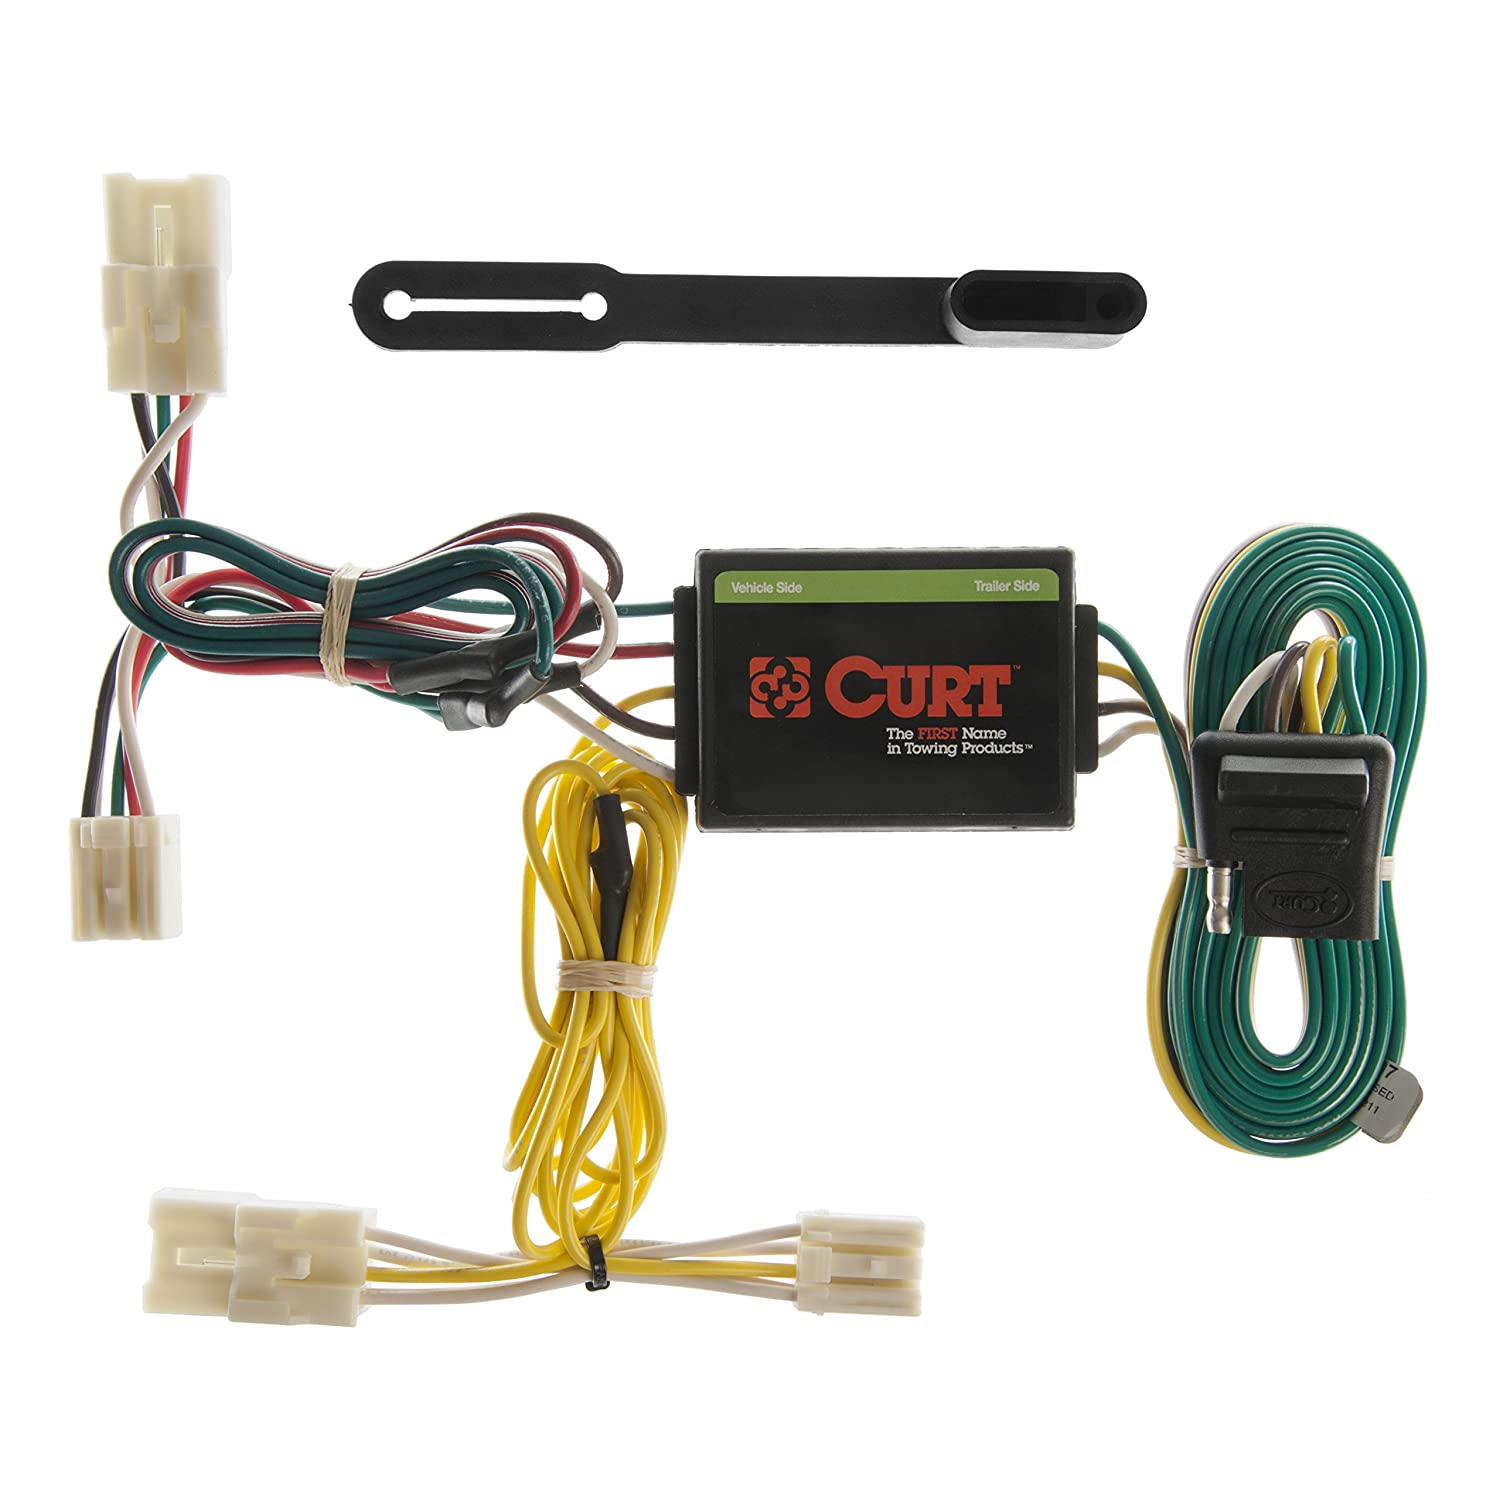 Curt 55307 Custom Wiring Harness Manufacturing Holiday Presents For Cars